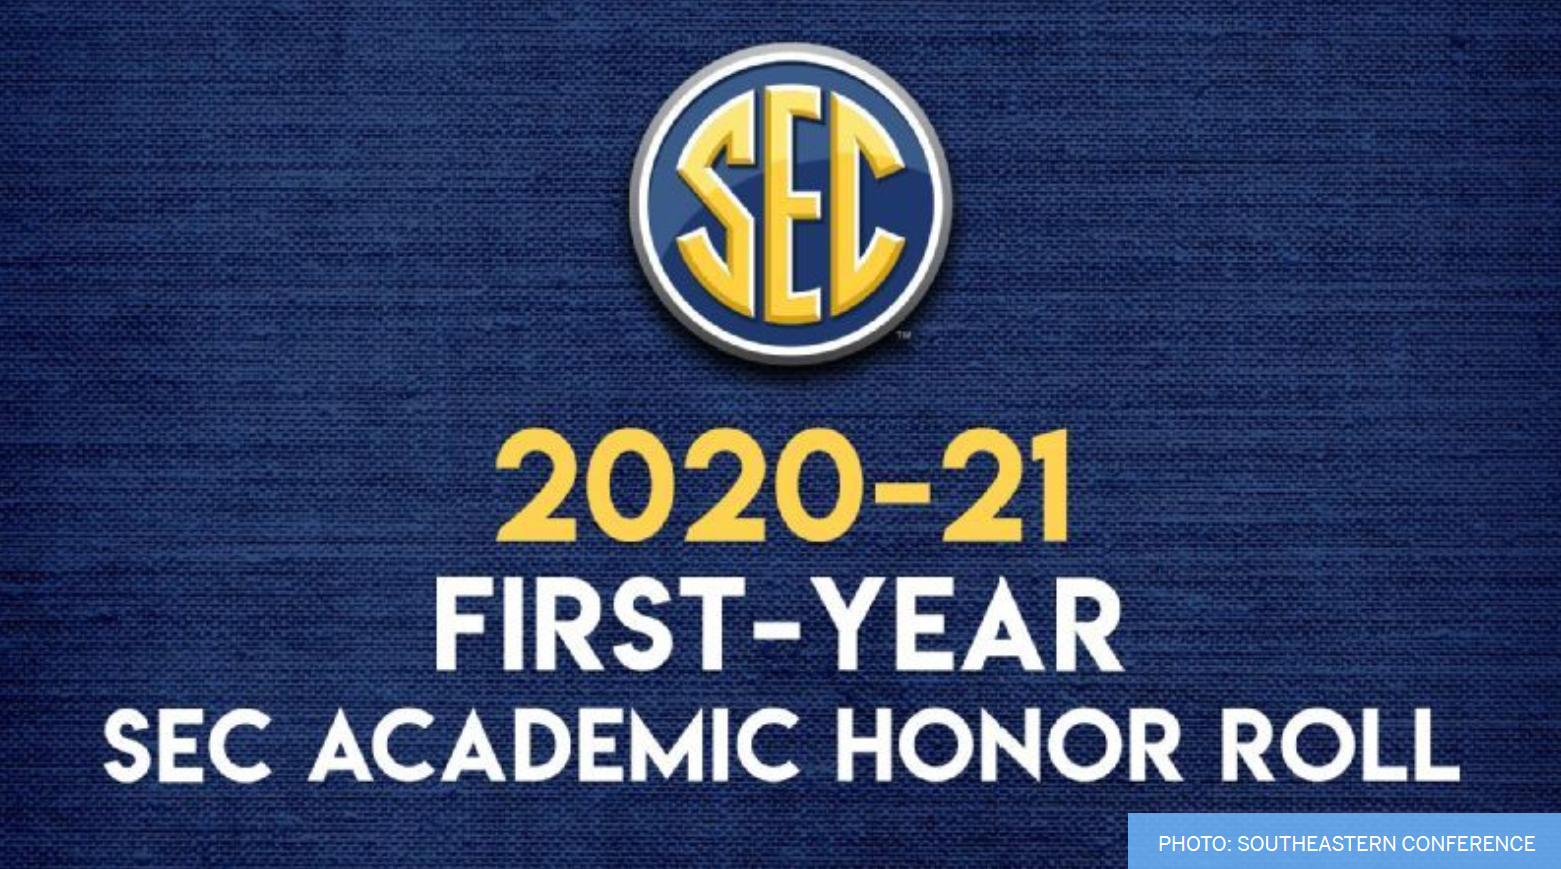 2020-21 First-Year SEC Academic Honor Roll